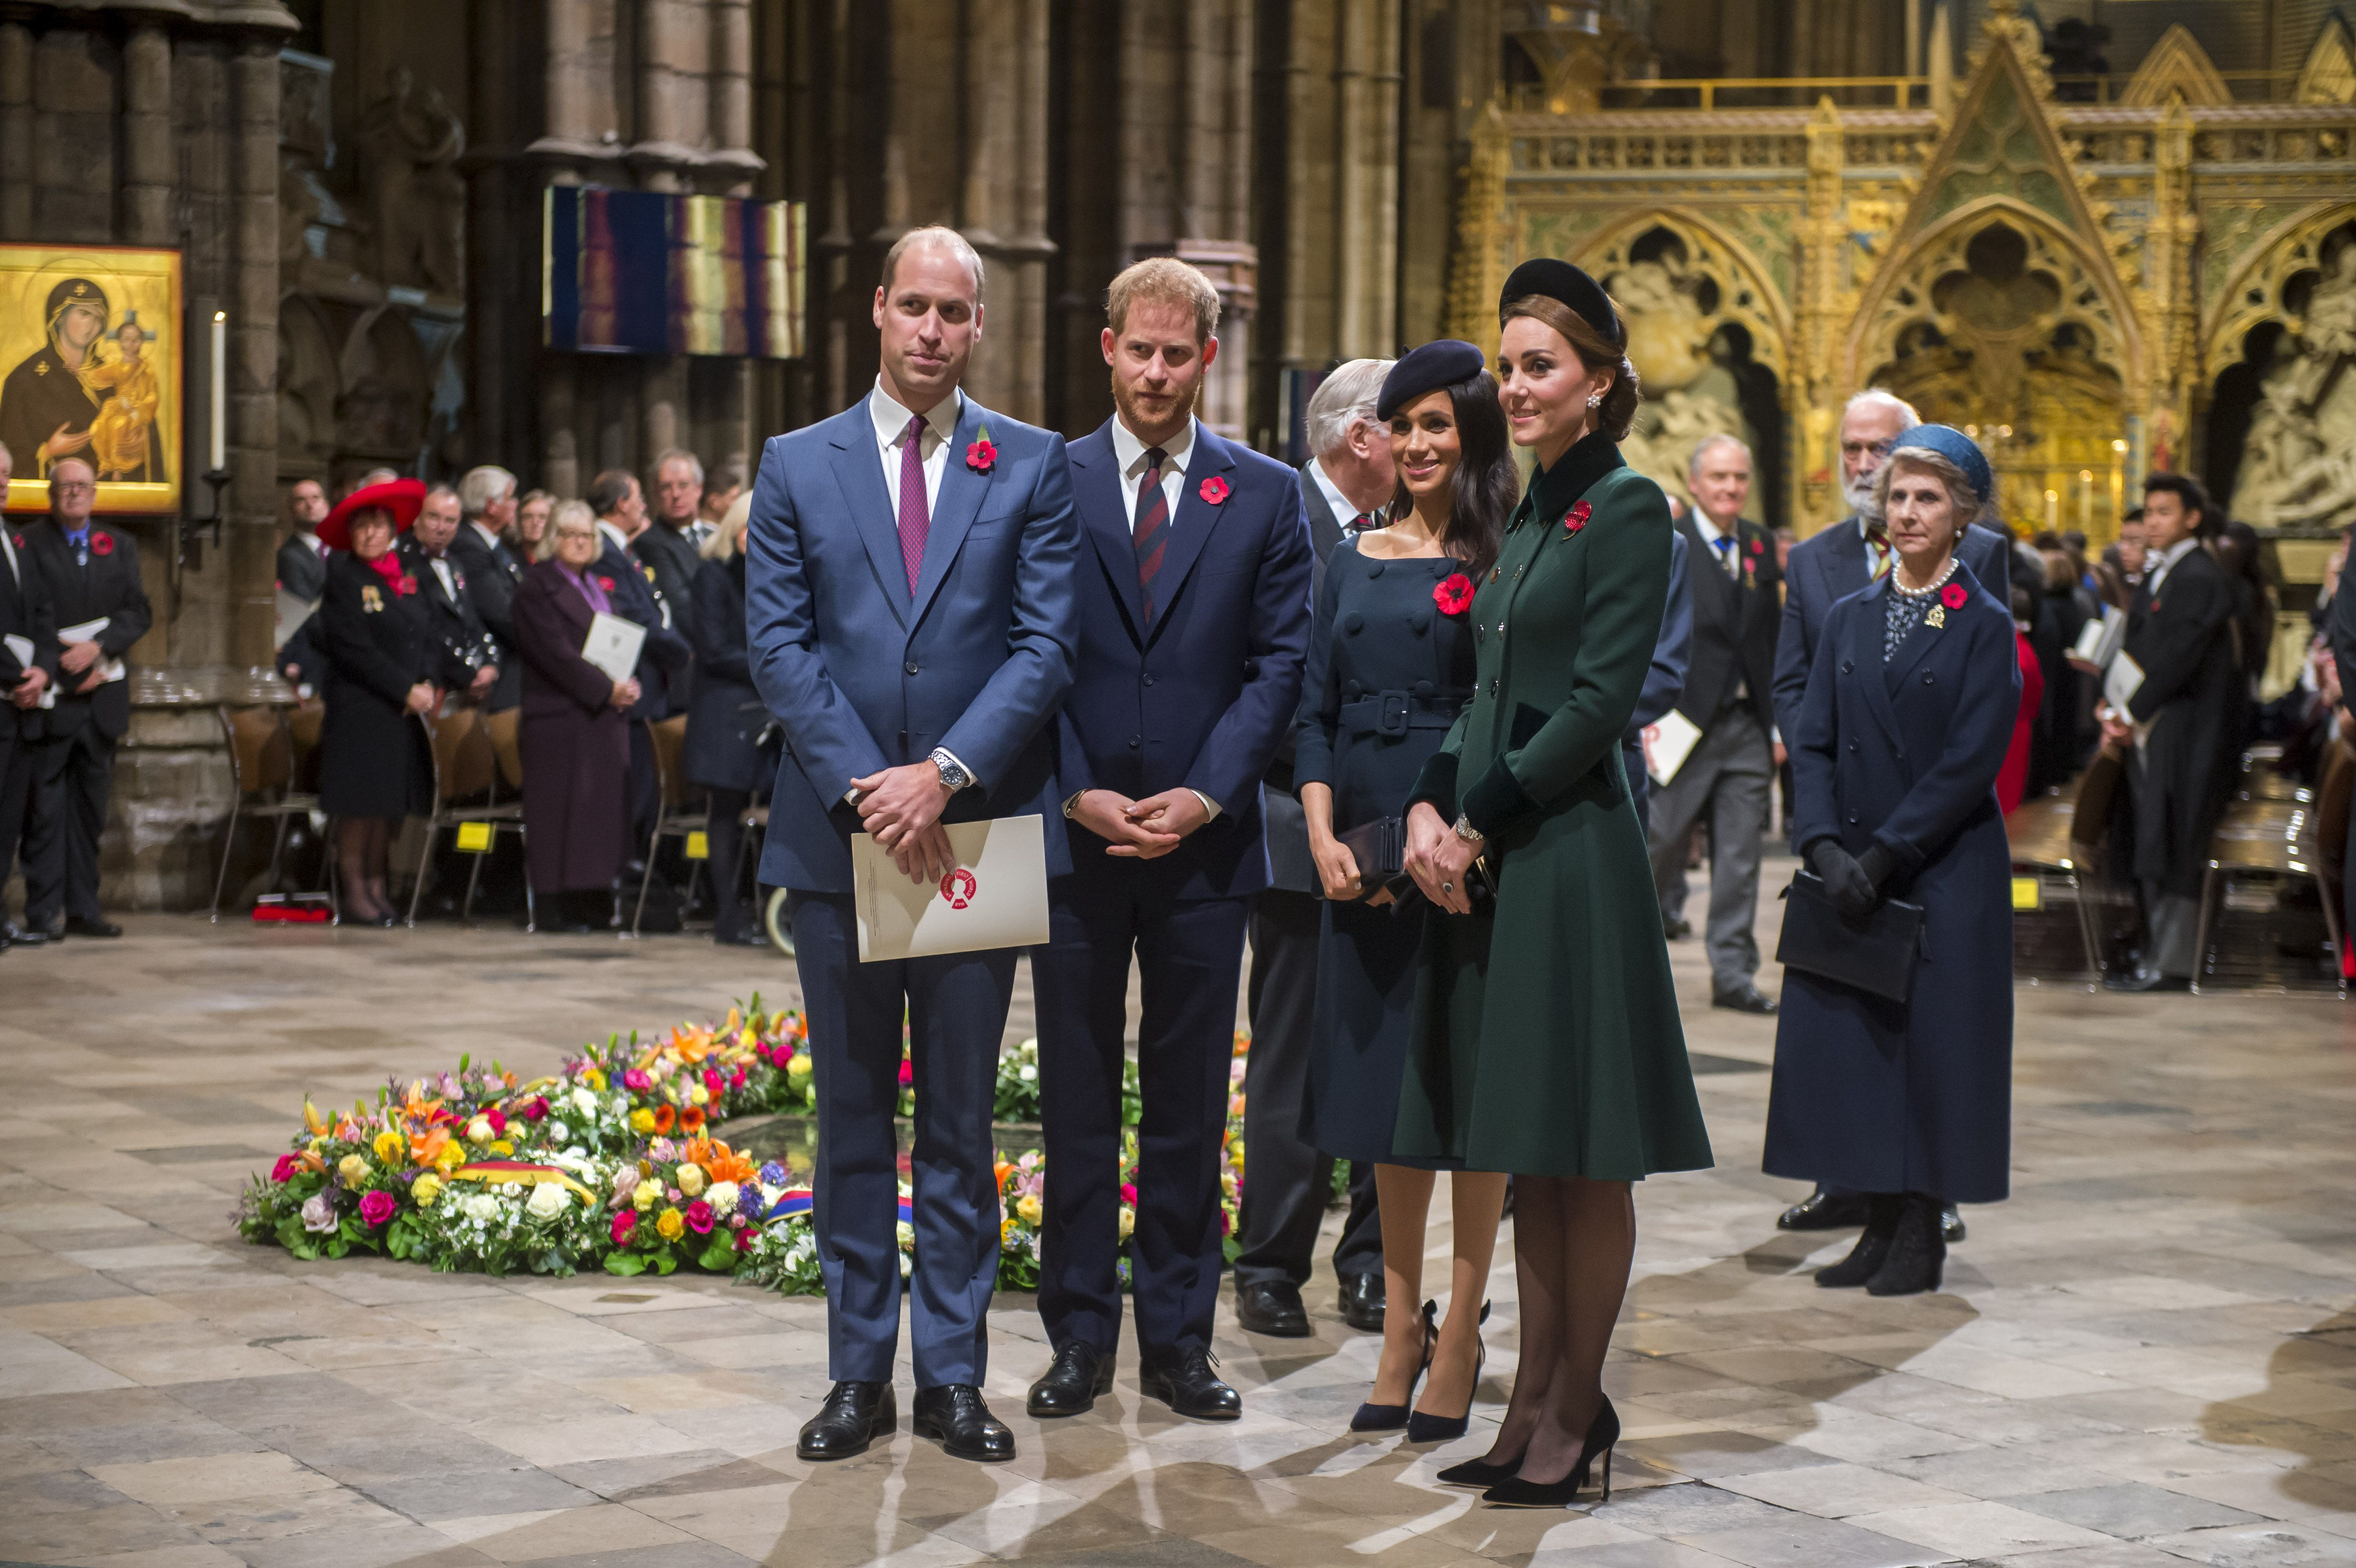 Why Prince William, Prince Harry and Meghan Markle missed last night's major royal event